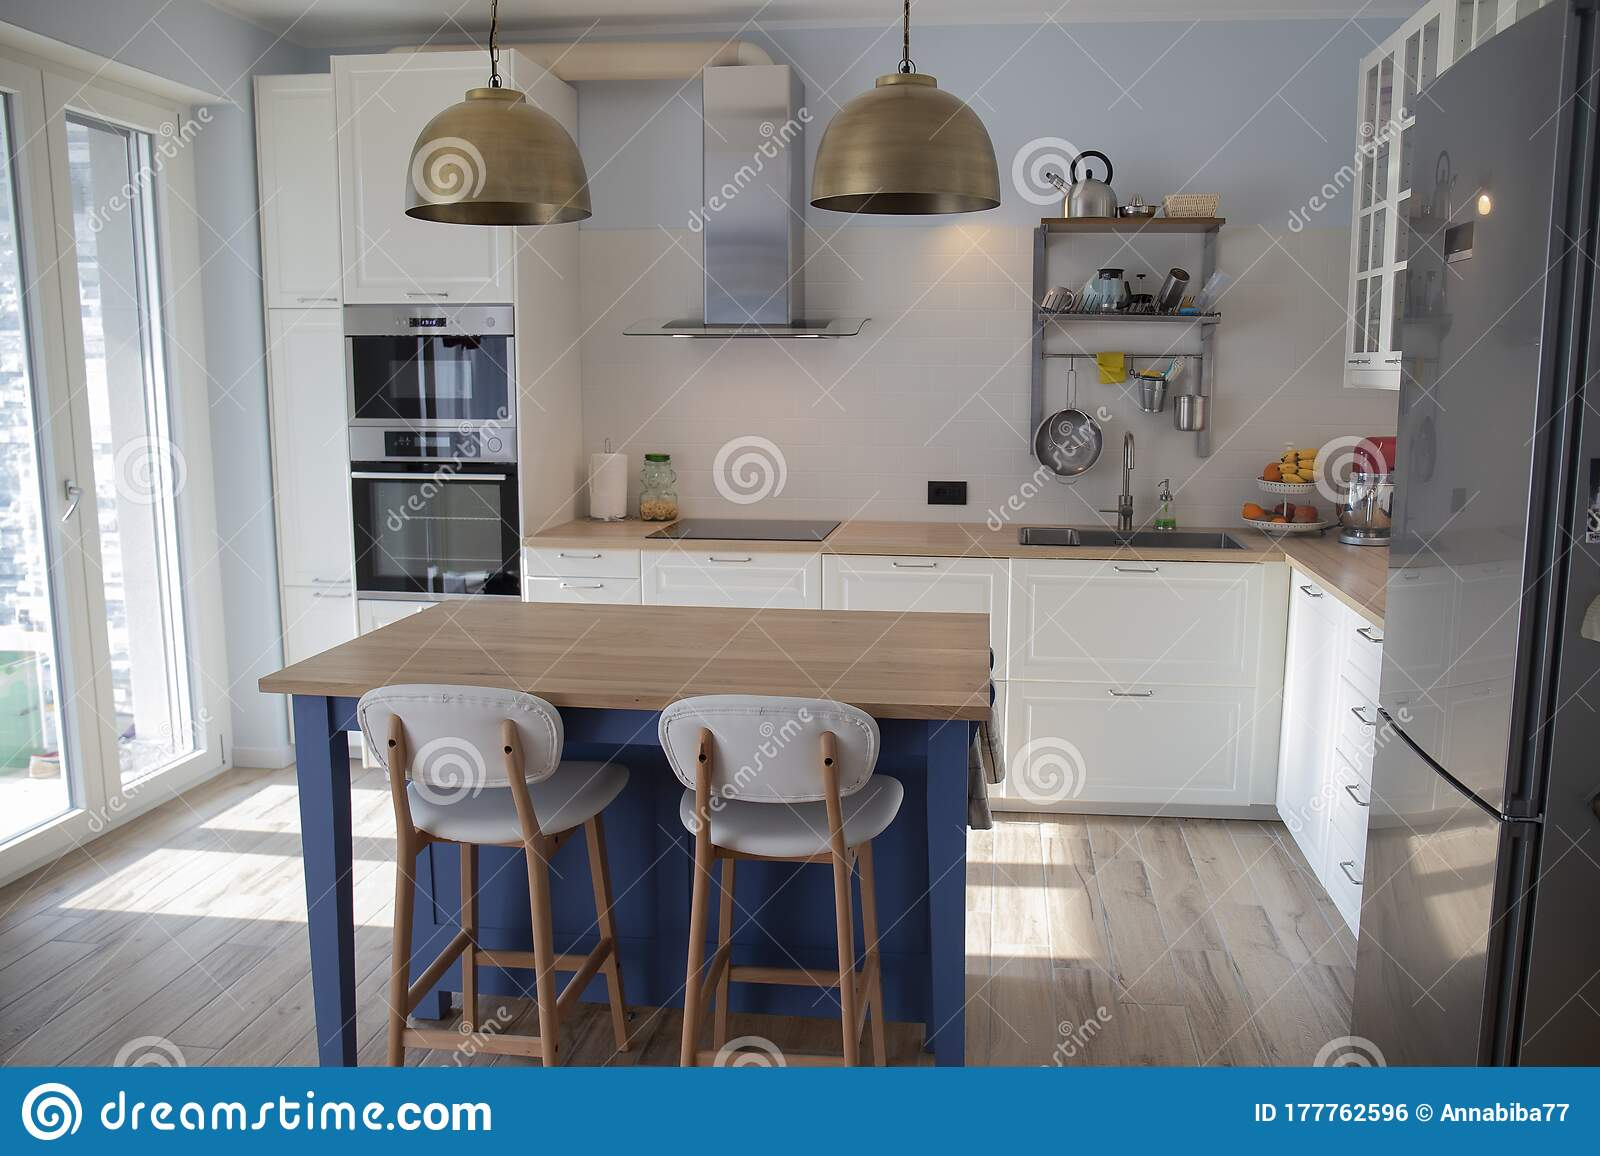 207 Kitchen Pendant Lights Photos Free Royalty Free Stock Photos From Dreamstime